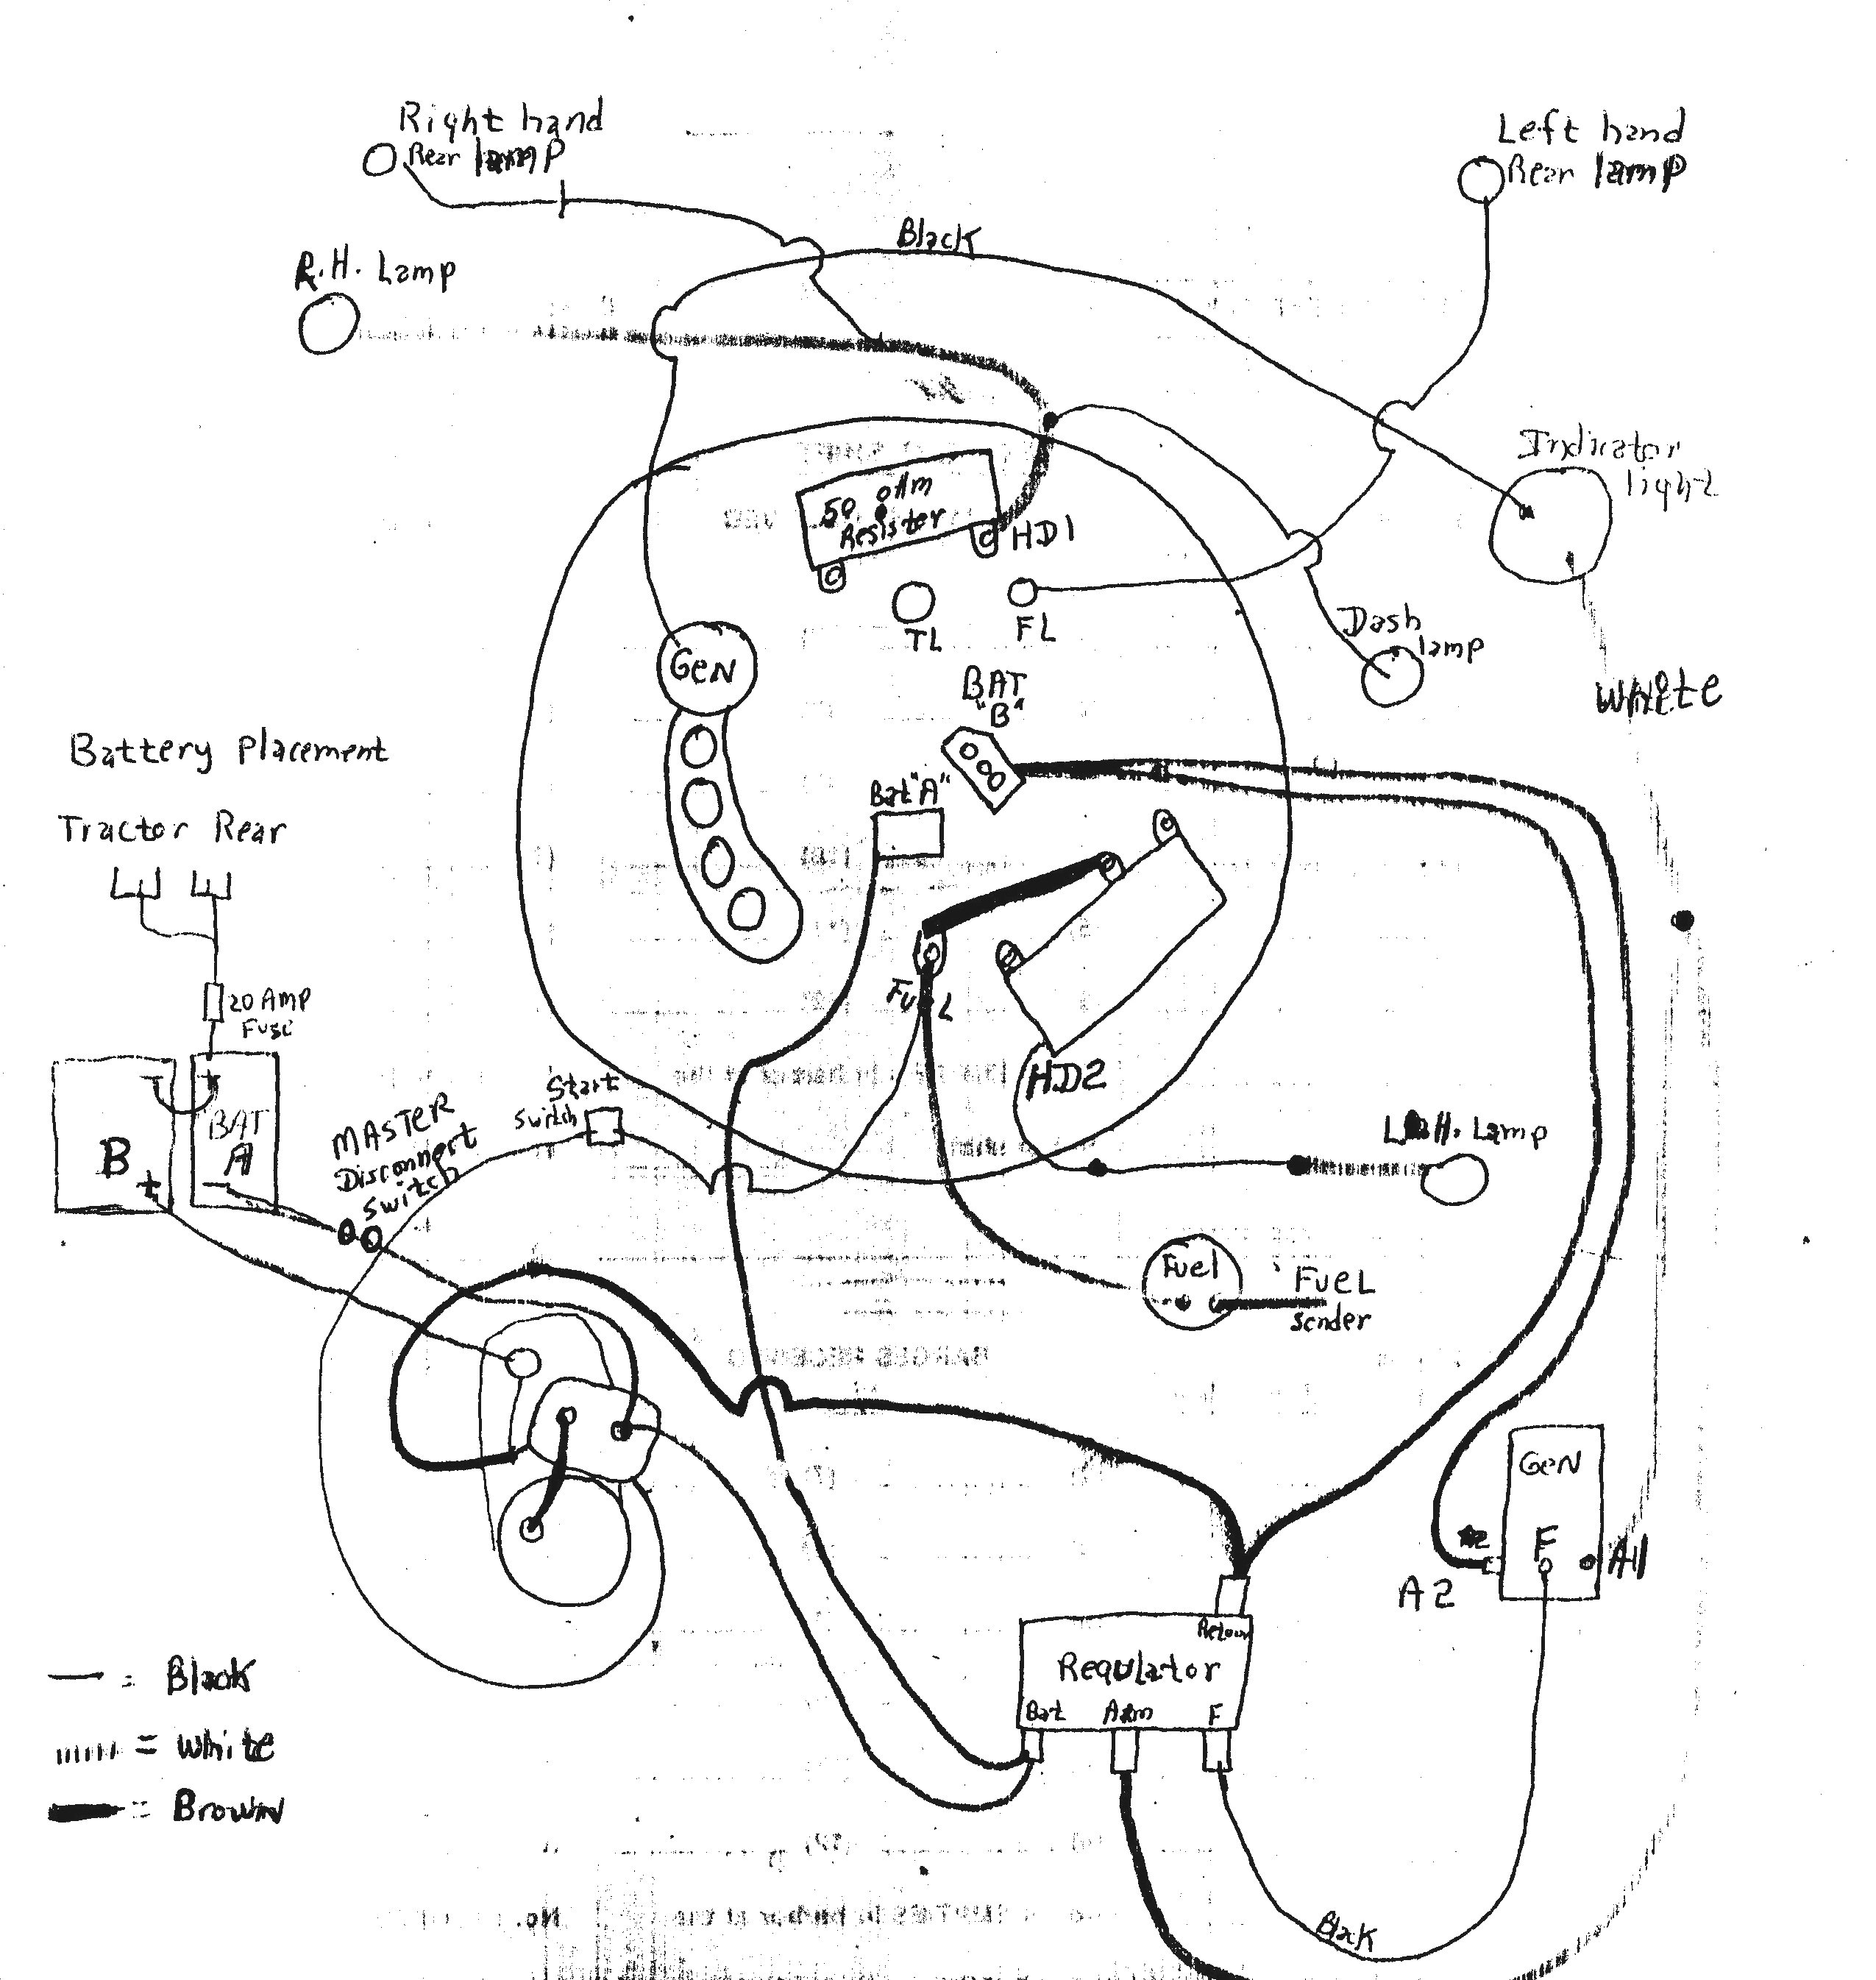 john deere starter relay wiring diagrams the john deere 24 volt electrical system explained john deere s original wiring diagram